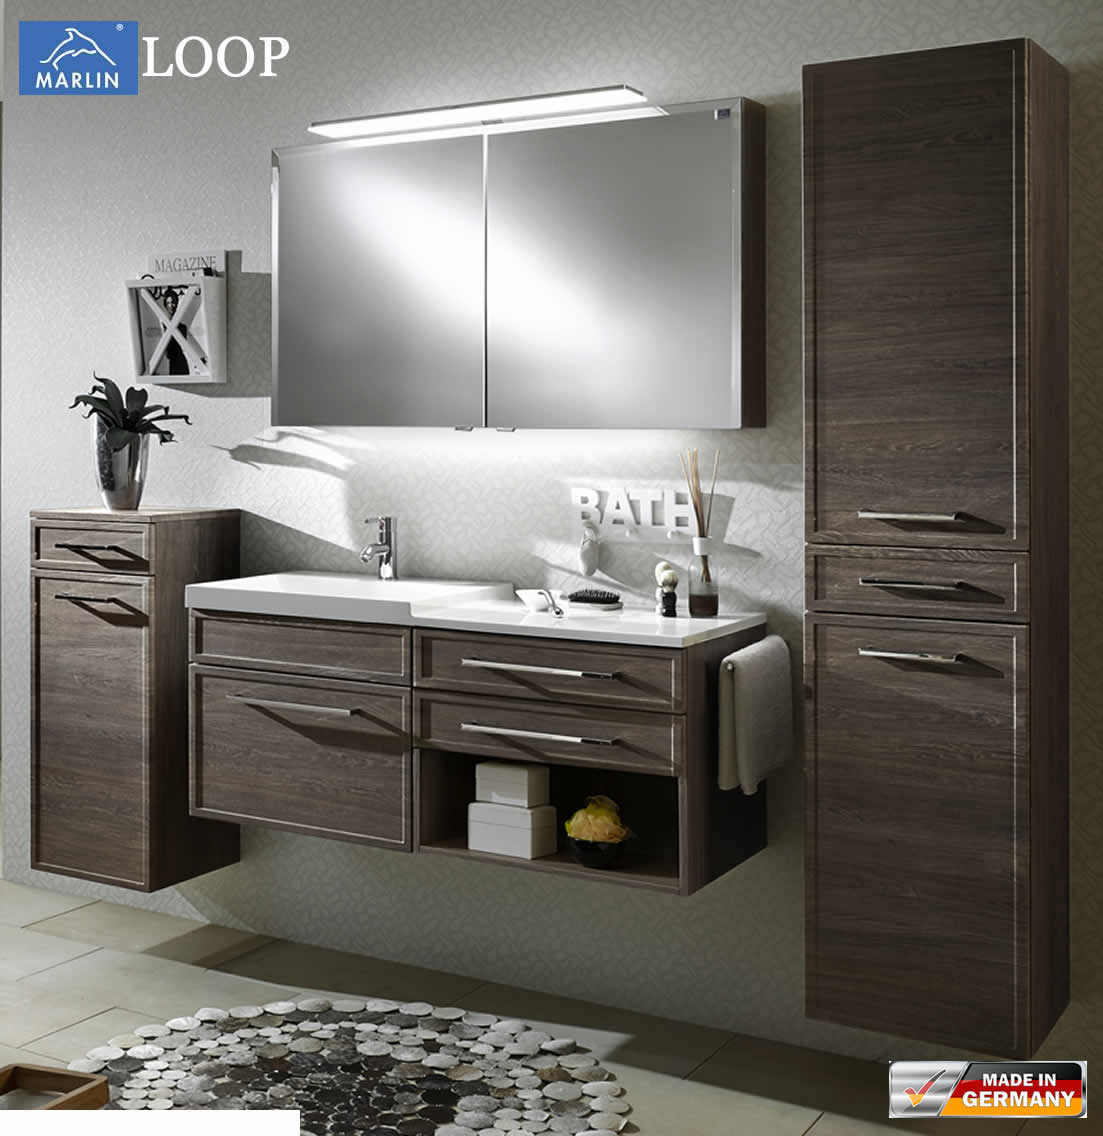 marlin loop badm bel set 120 cm mit led spiegelschrank rahmenoptik v2 1 impuls home. Black Bedroom Furniture Sets. Home Design Ideas